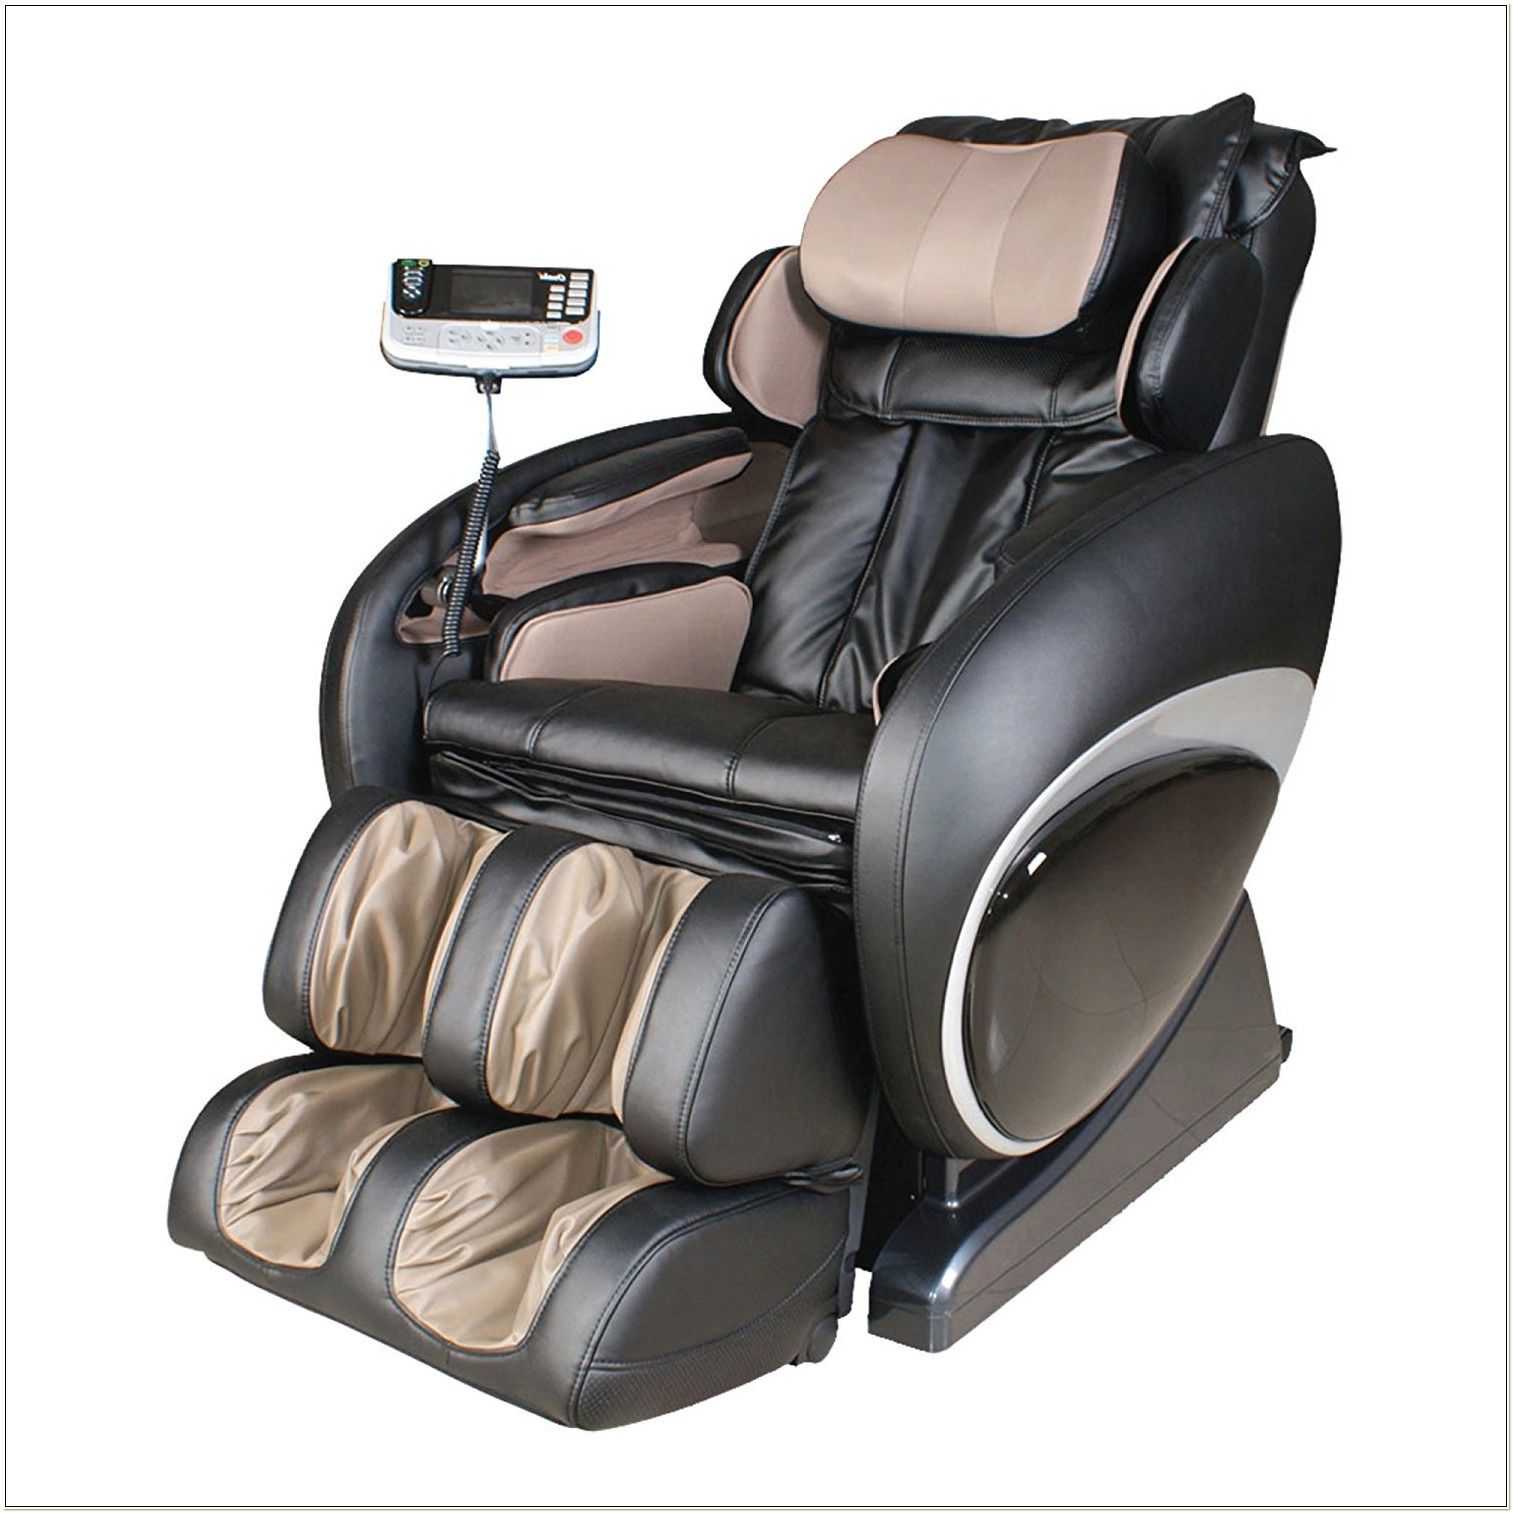 Osaki 4000 Executive Zero Gravity Massage Chair